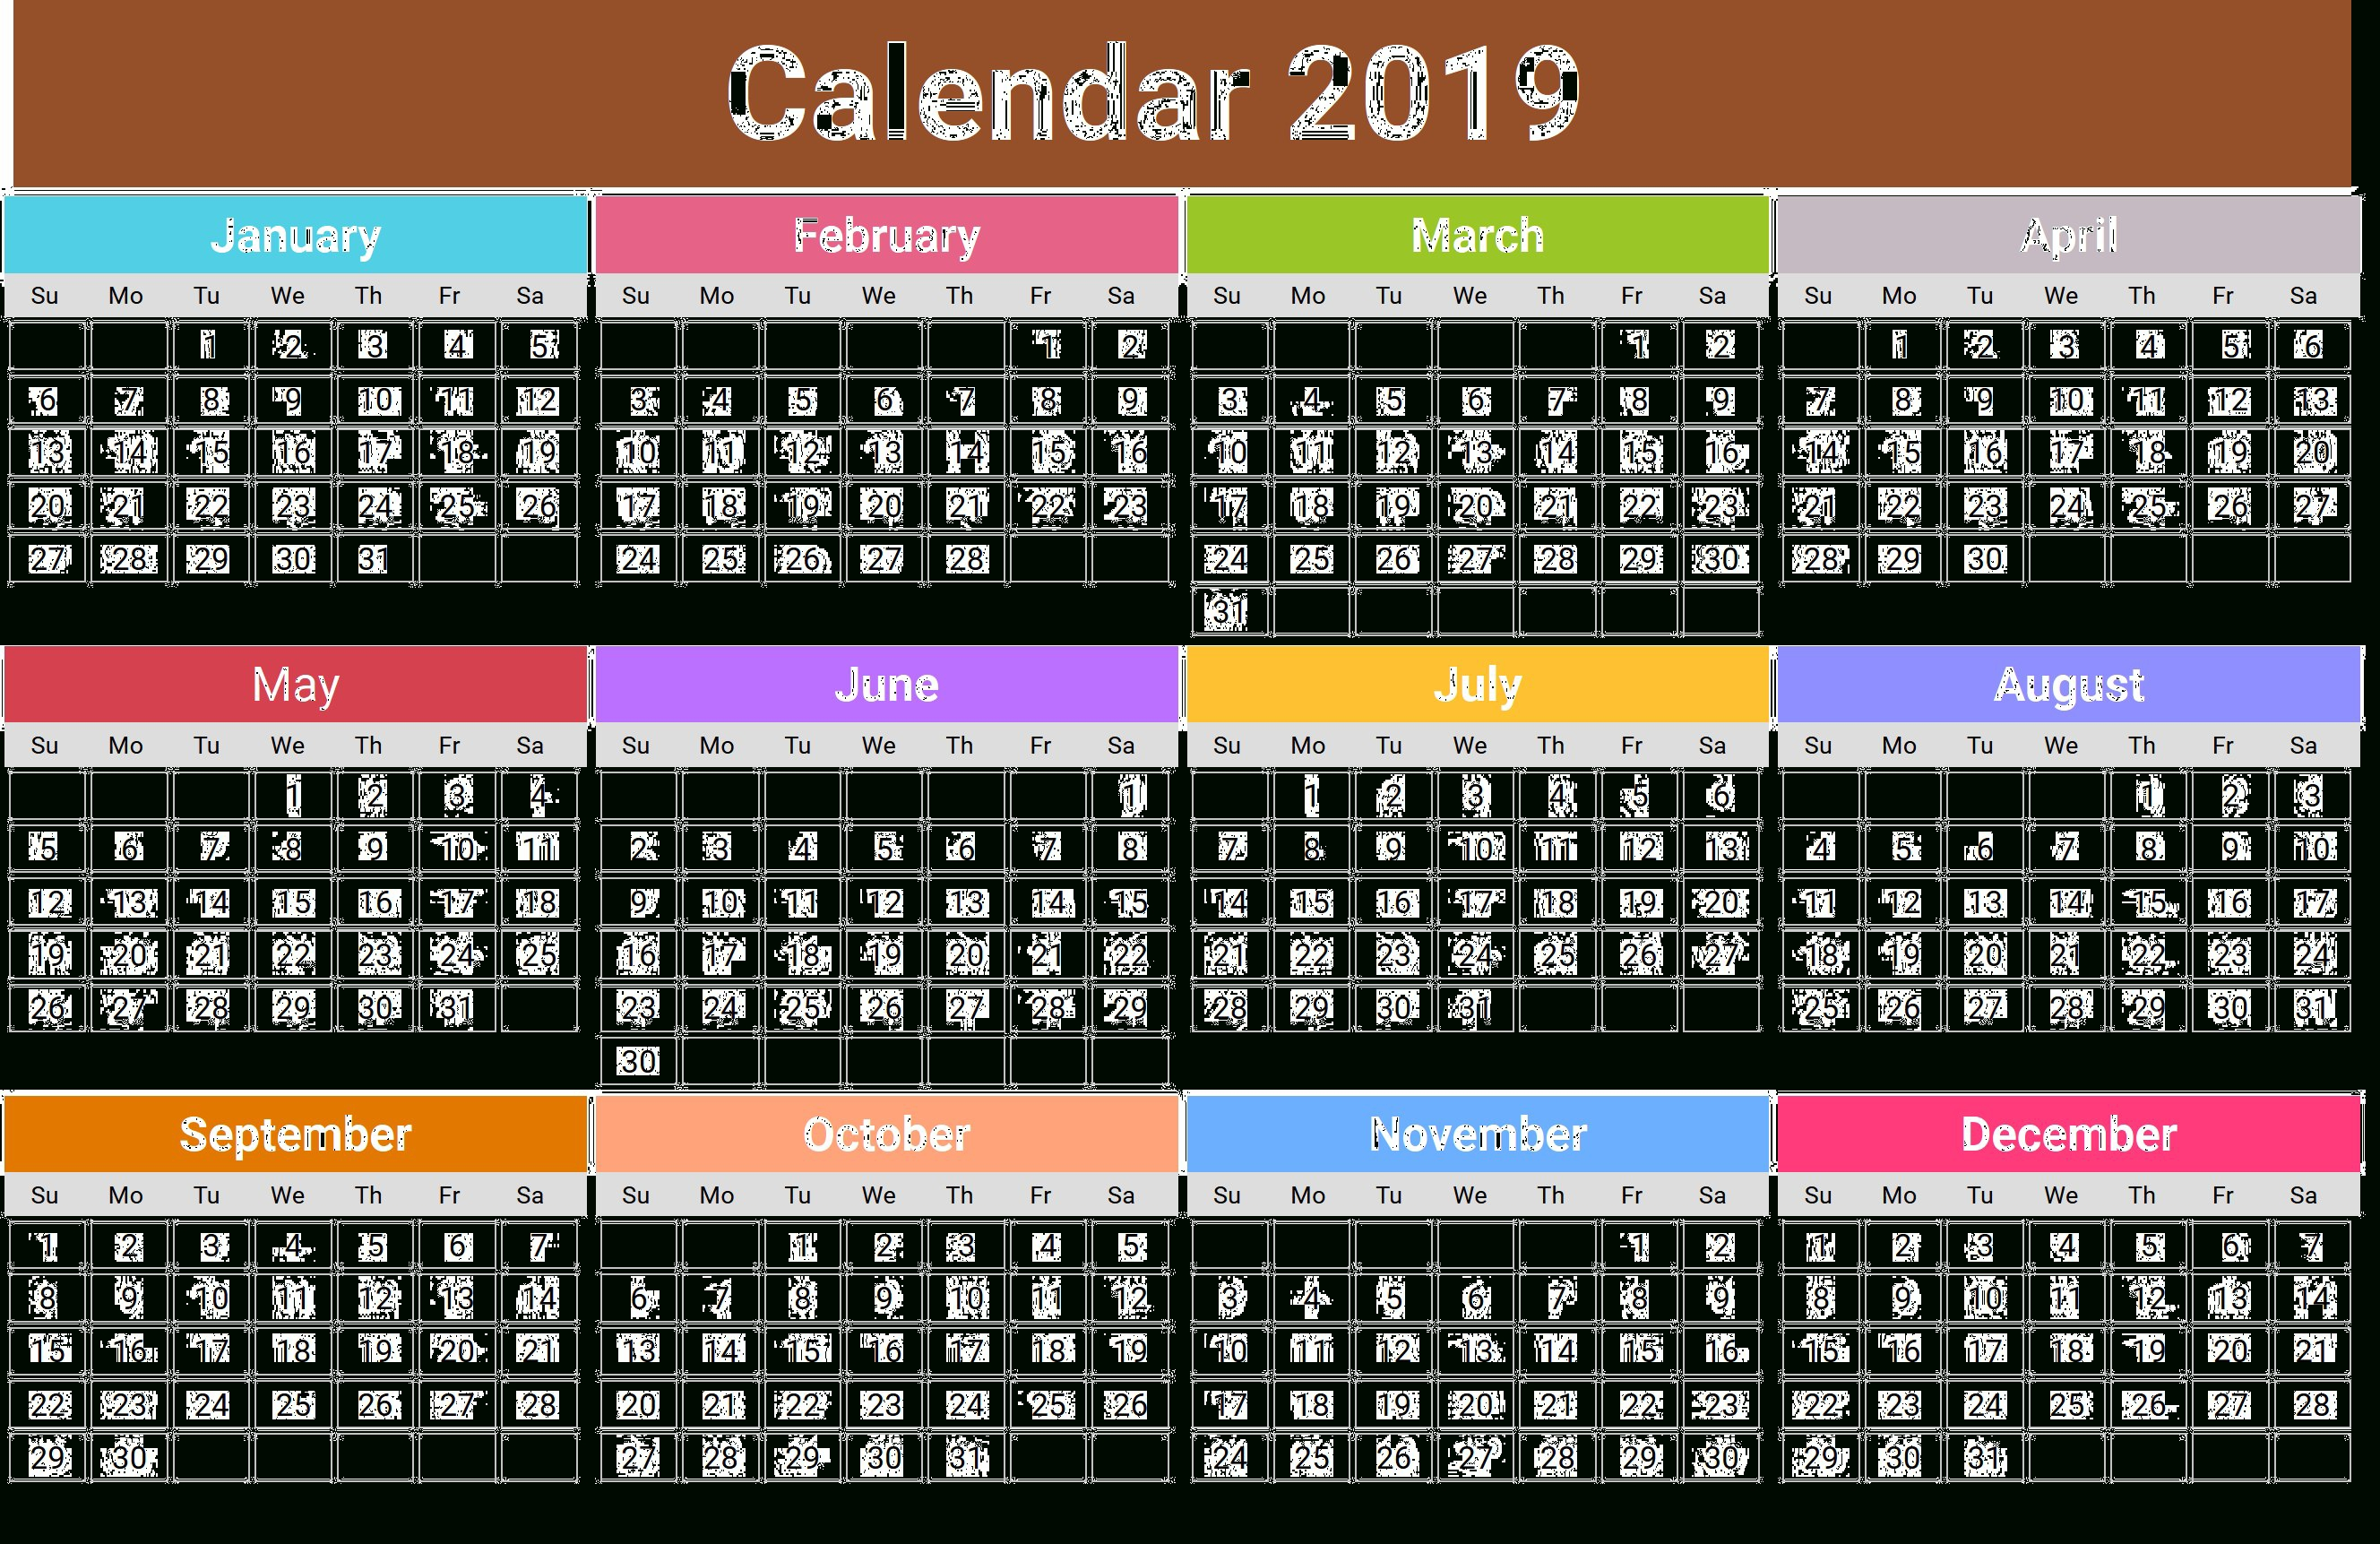 2019 Calendar Png Transparent Images | Png All Calendar 2019 Png